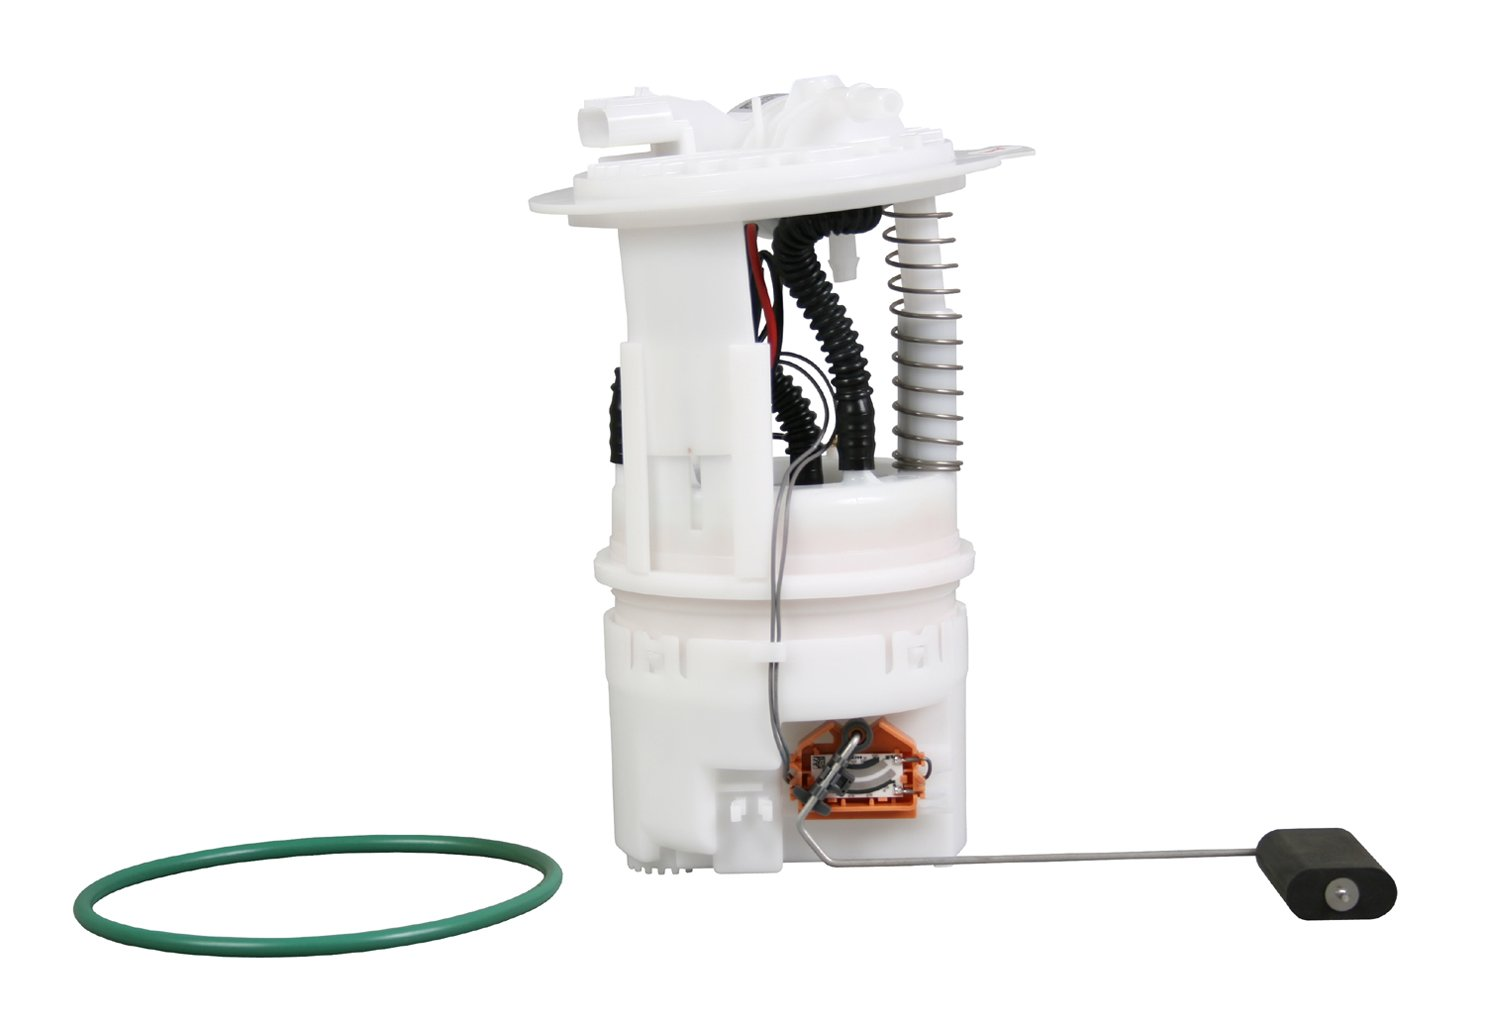 61j3tqm D9L._SL1485_ amazon com airtex e7196m fuel pump module assembly automotive  at bakdesigns.co